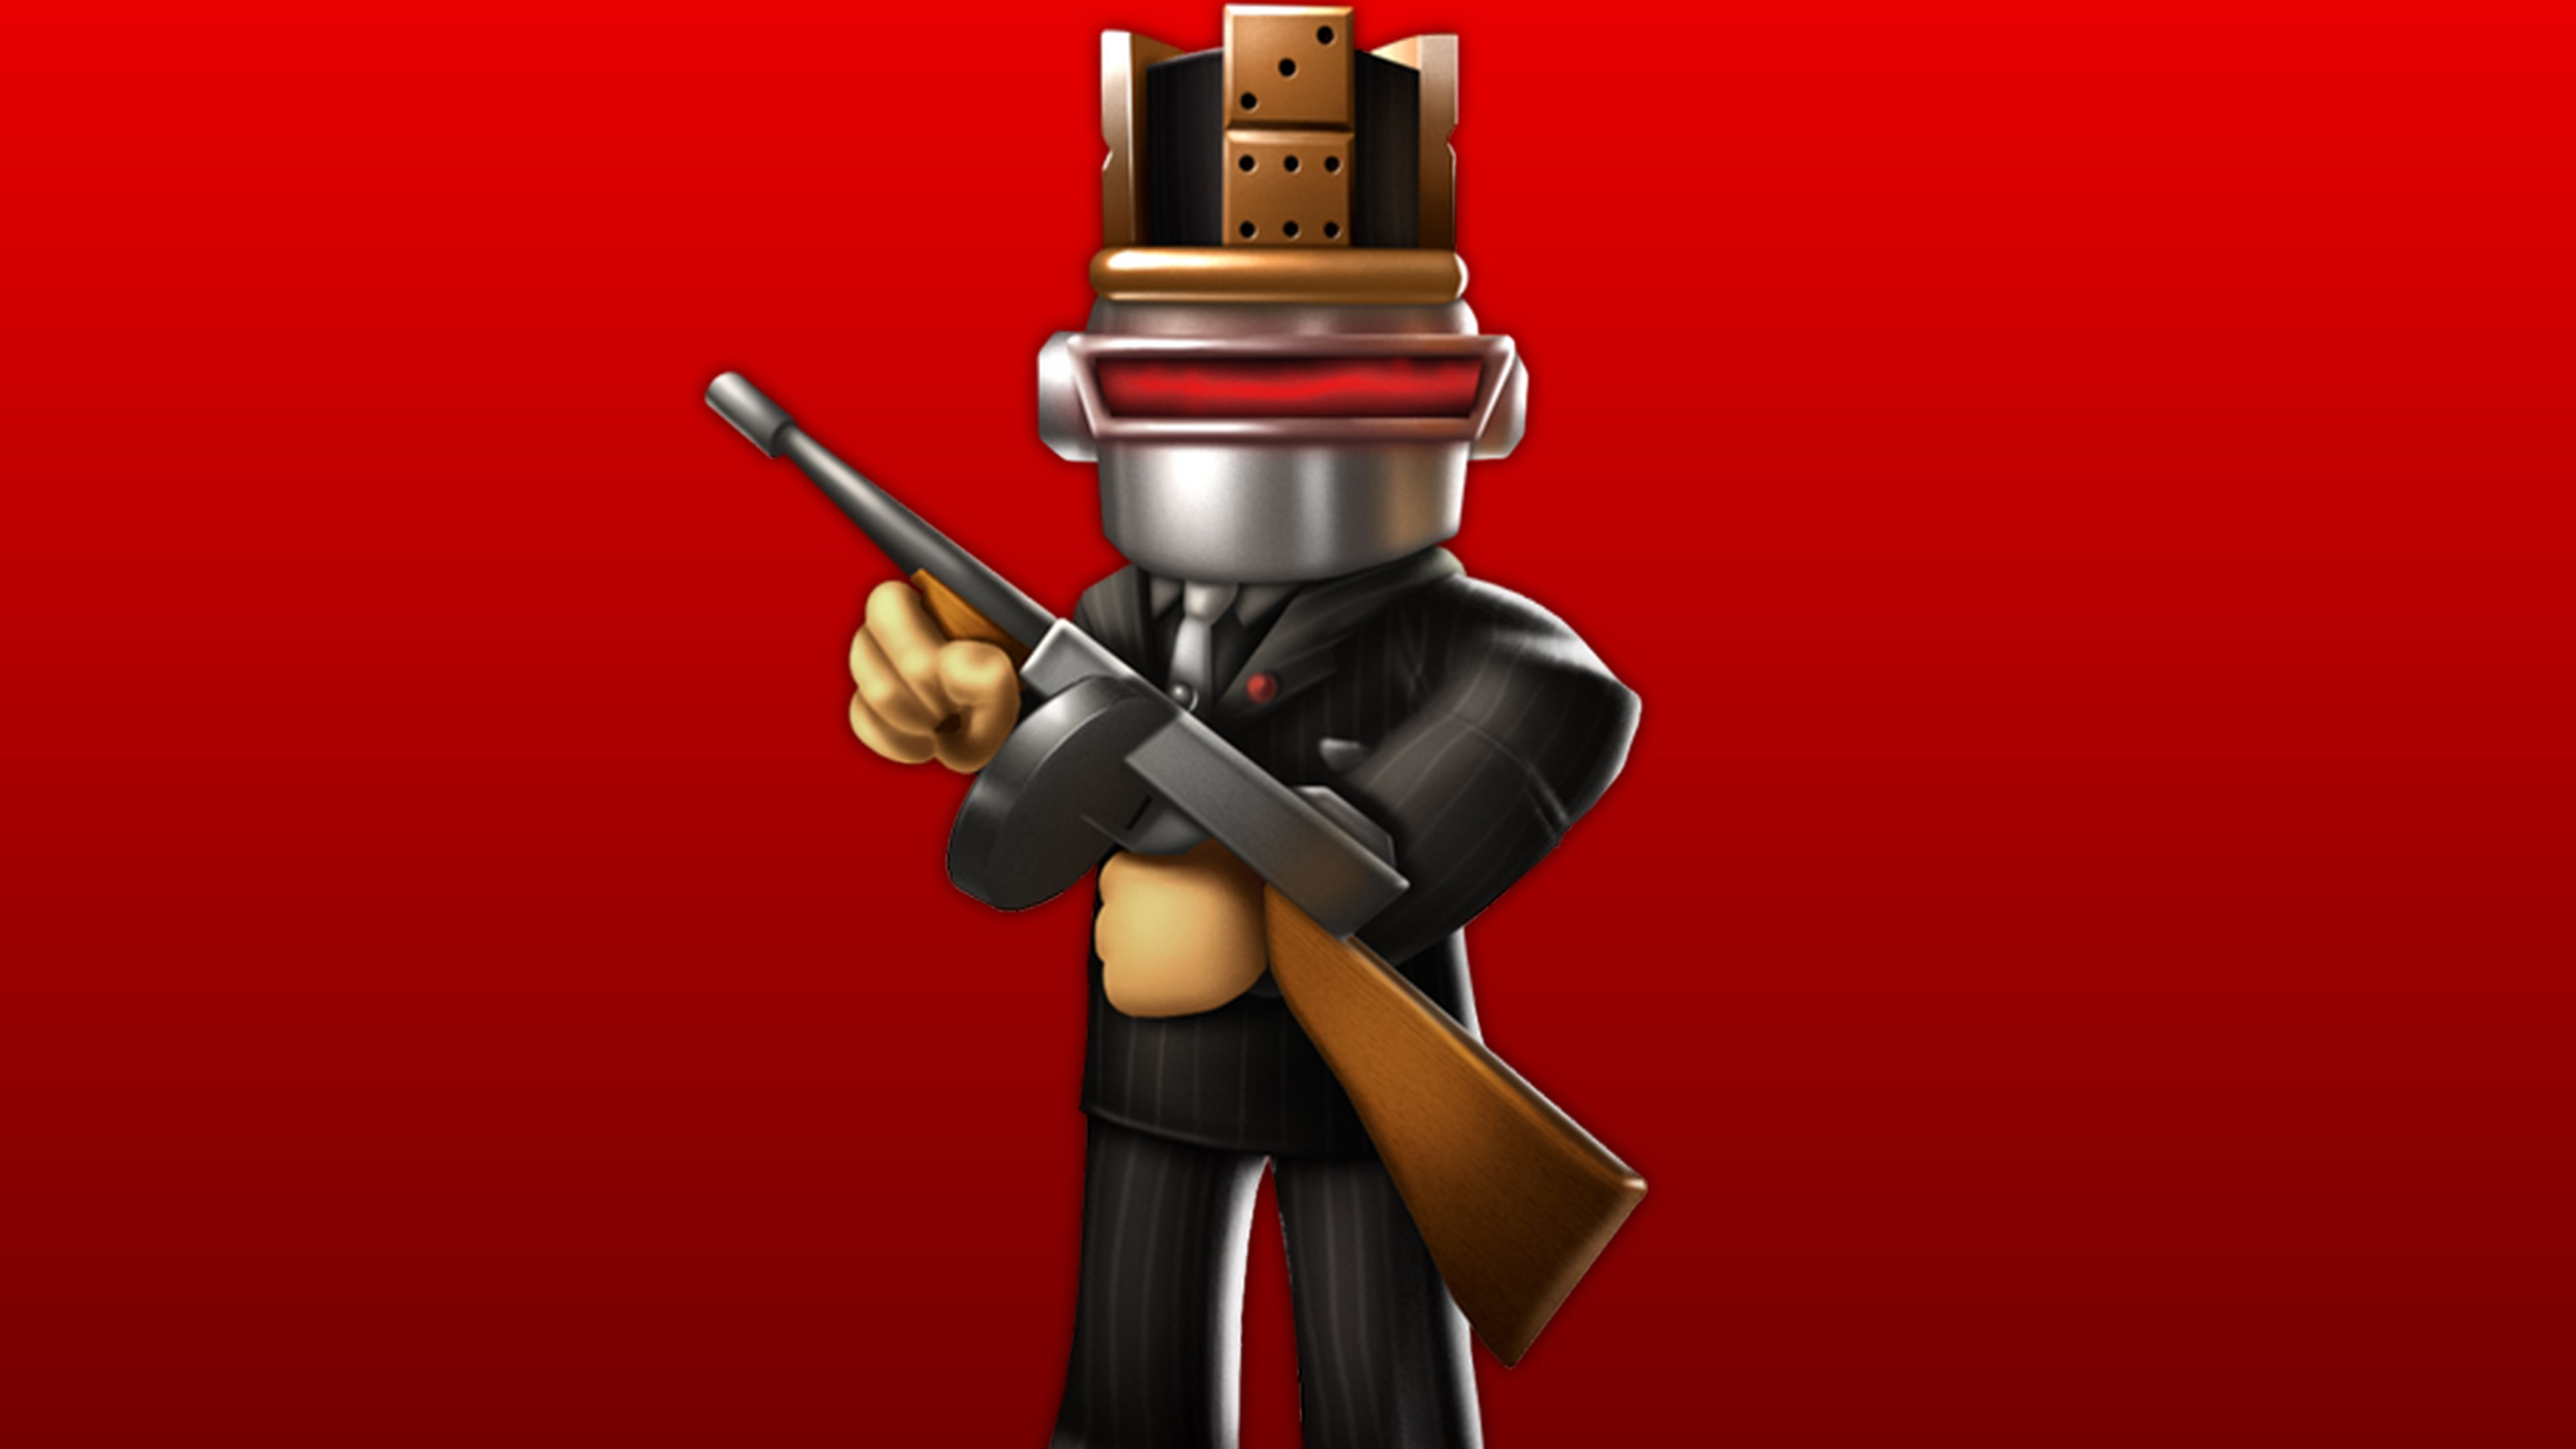 Roblox Boy Wallpapers Top Free Roblox Boy Backgrounds Wallpaperaccess